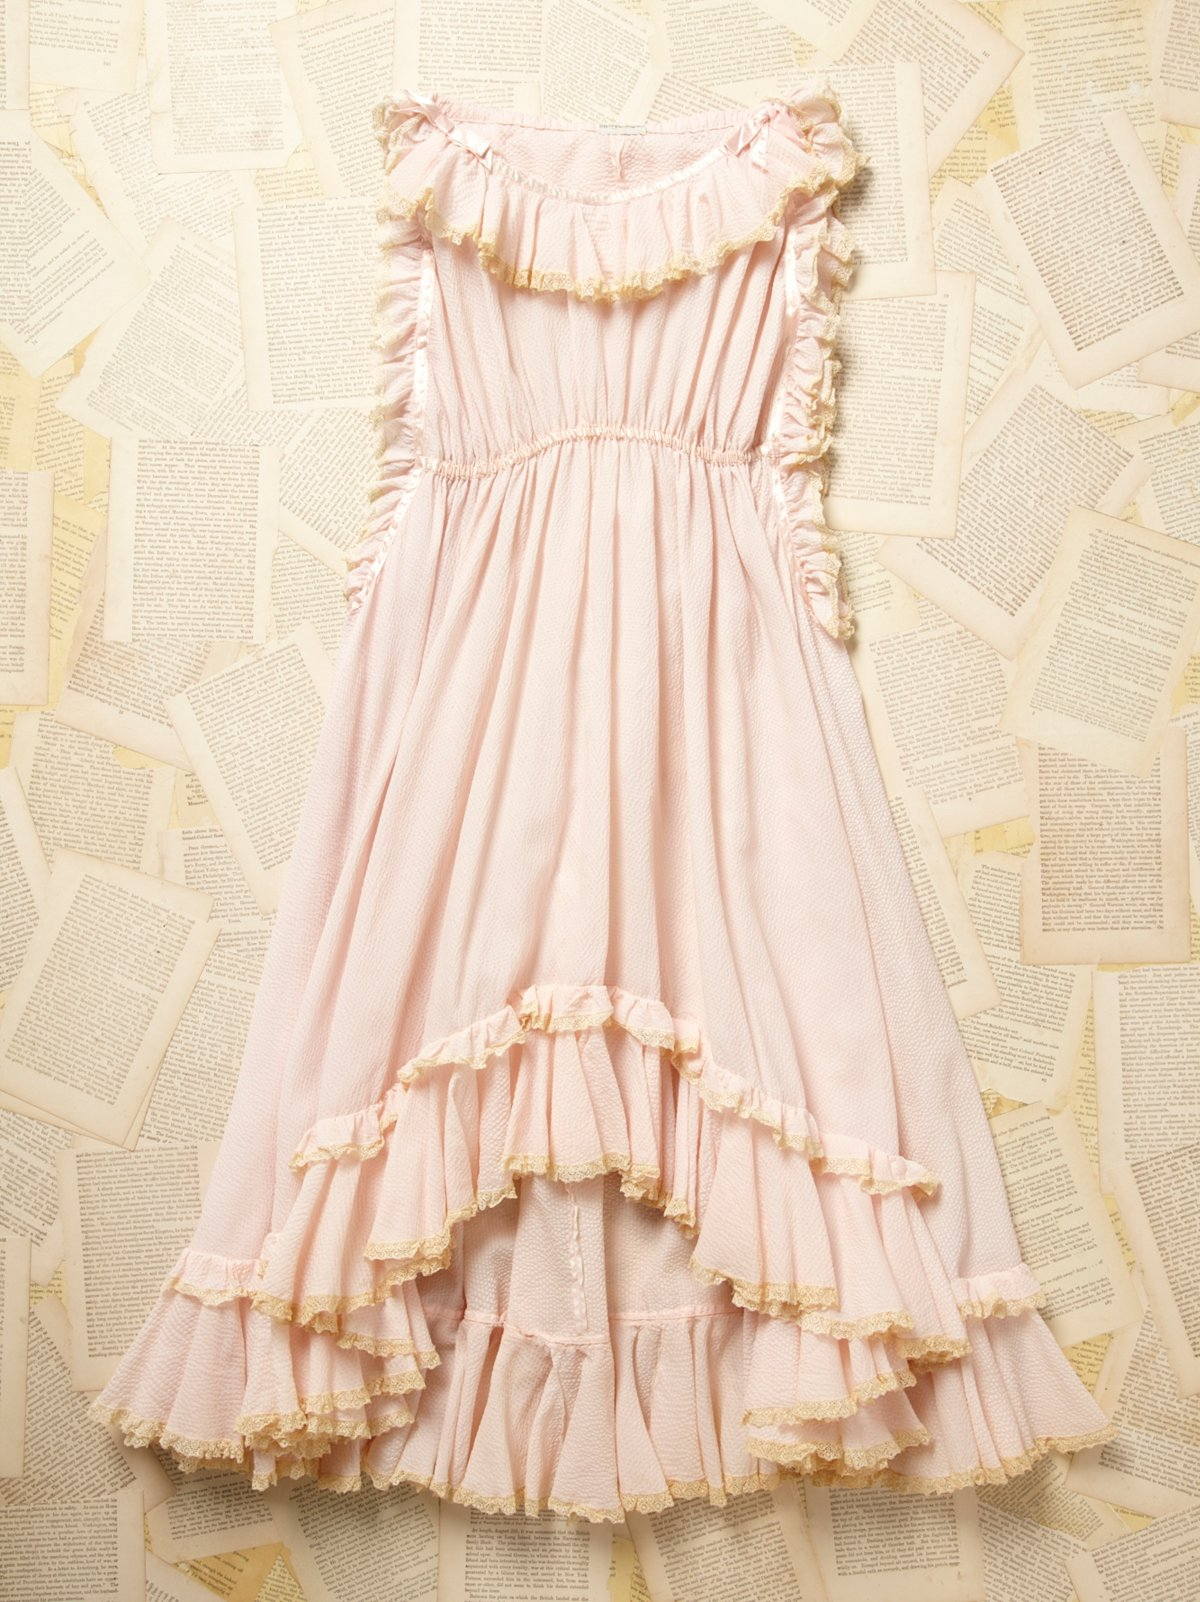 Vintage 1930s Pink Ruffle Dress